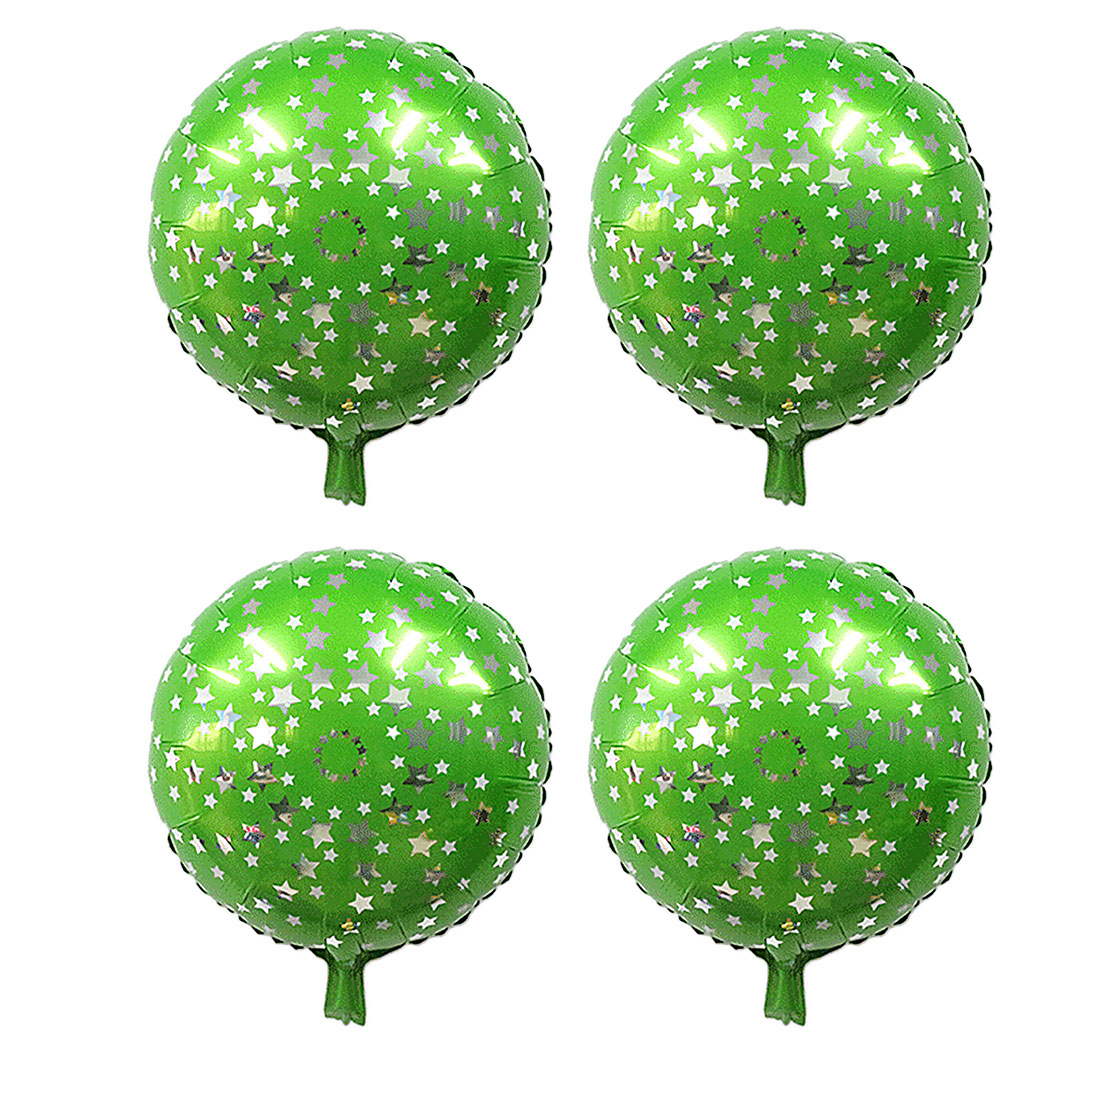 Home Birthday Wedding Foil Star Pattern Round Inflation Balloon Green 18 Inches 4pcs